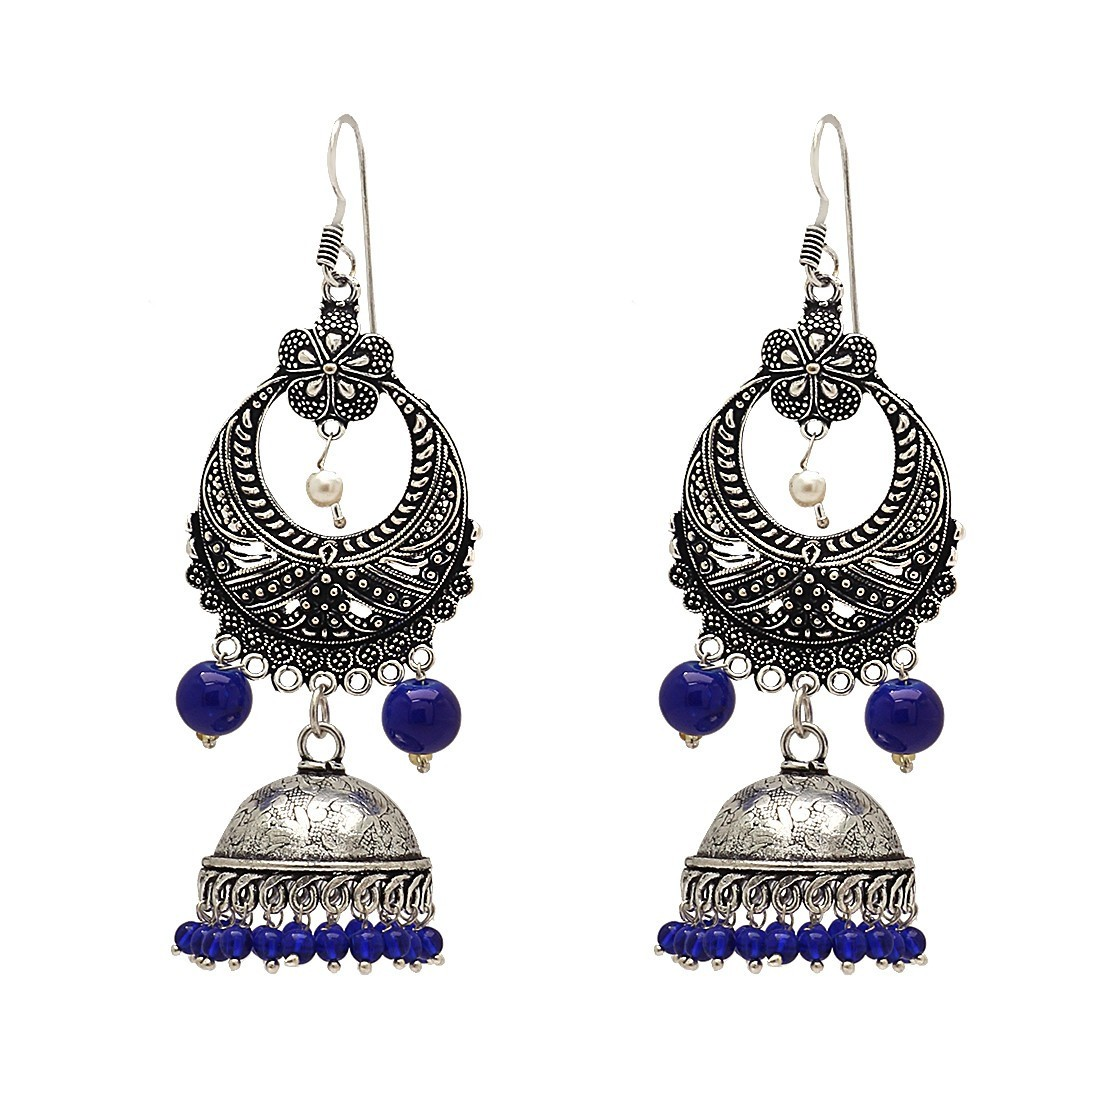 Culturelink Oxidized german silvet Multi Layer Chandbali Earrings with blue finishing